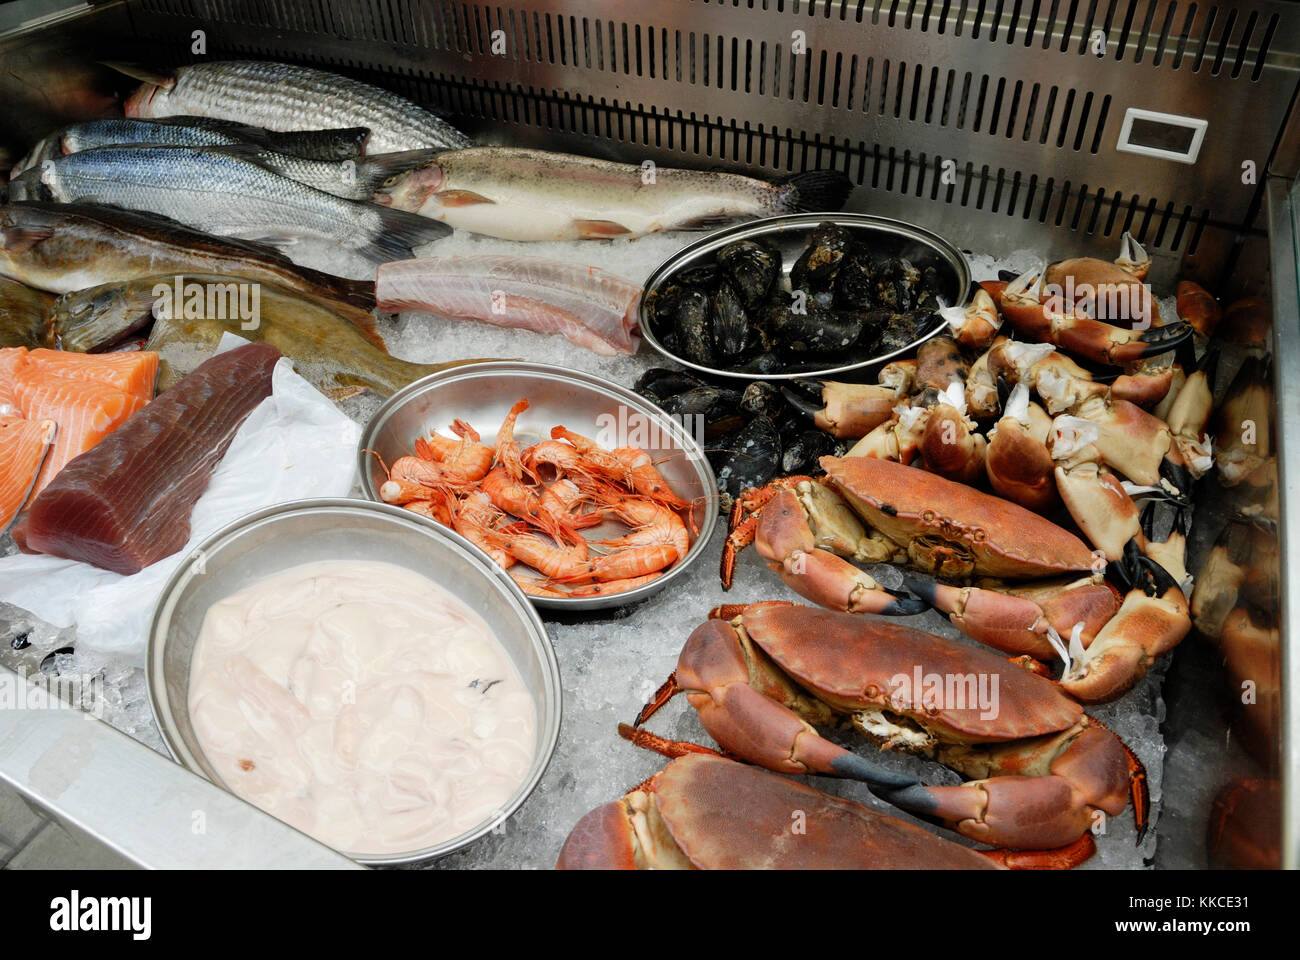 Selection of fish and crustaceans for sale on a stall at Aberystwyth farmers market, wales, uk. - Stock Image